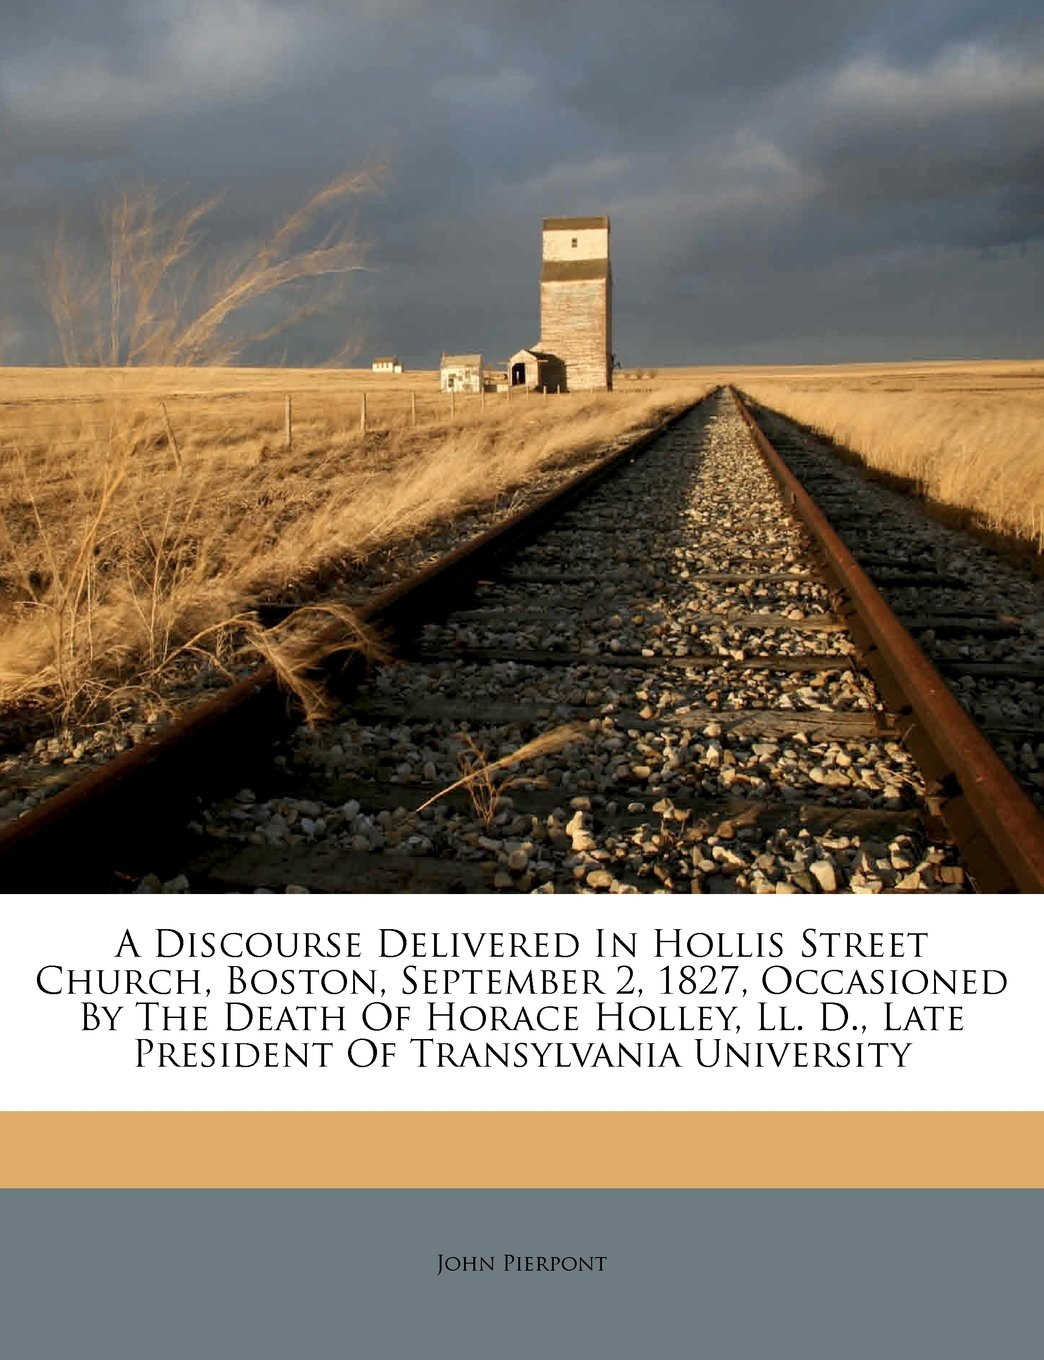 Download A Discourse Delivered In Hollis Street Church, Boston, September 2, 1827, Occasioned By The Death Of Horace Holley, Ll. D., Late President Of Transylvania University pdf epub